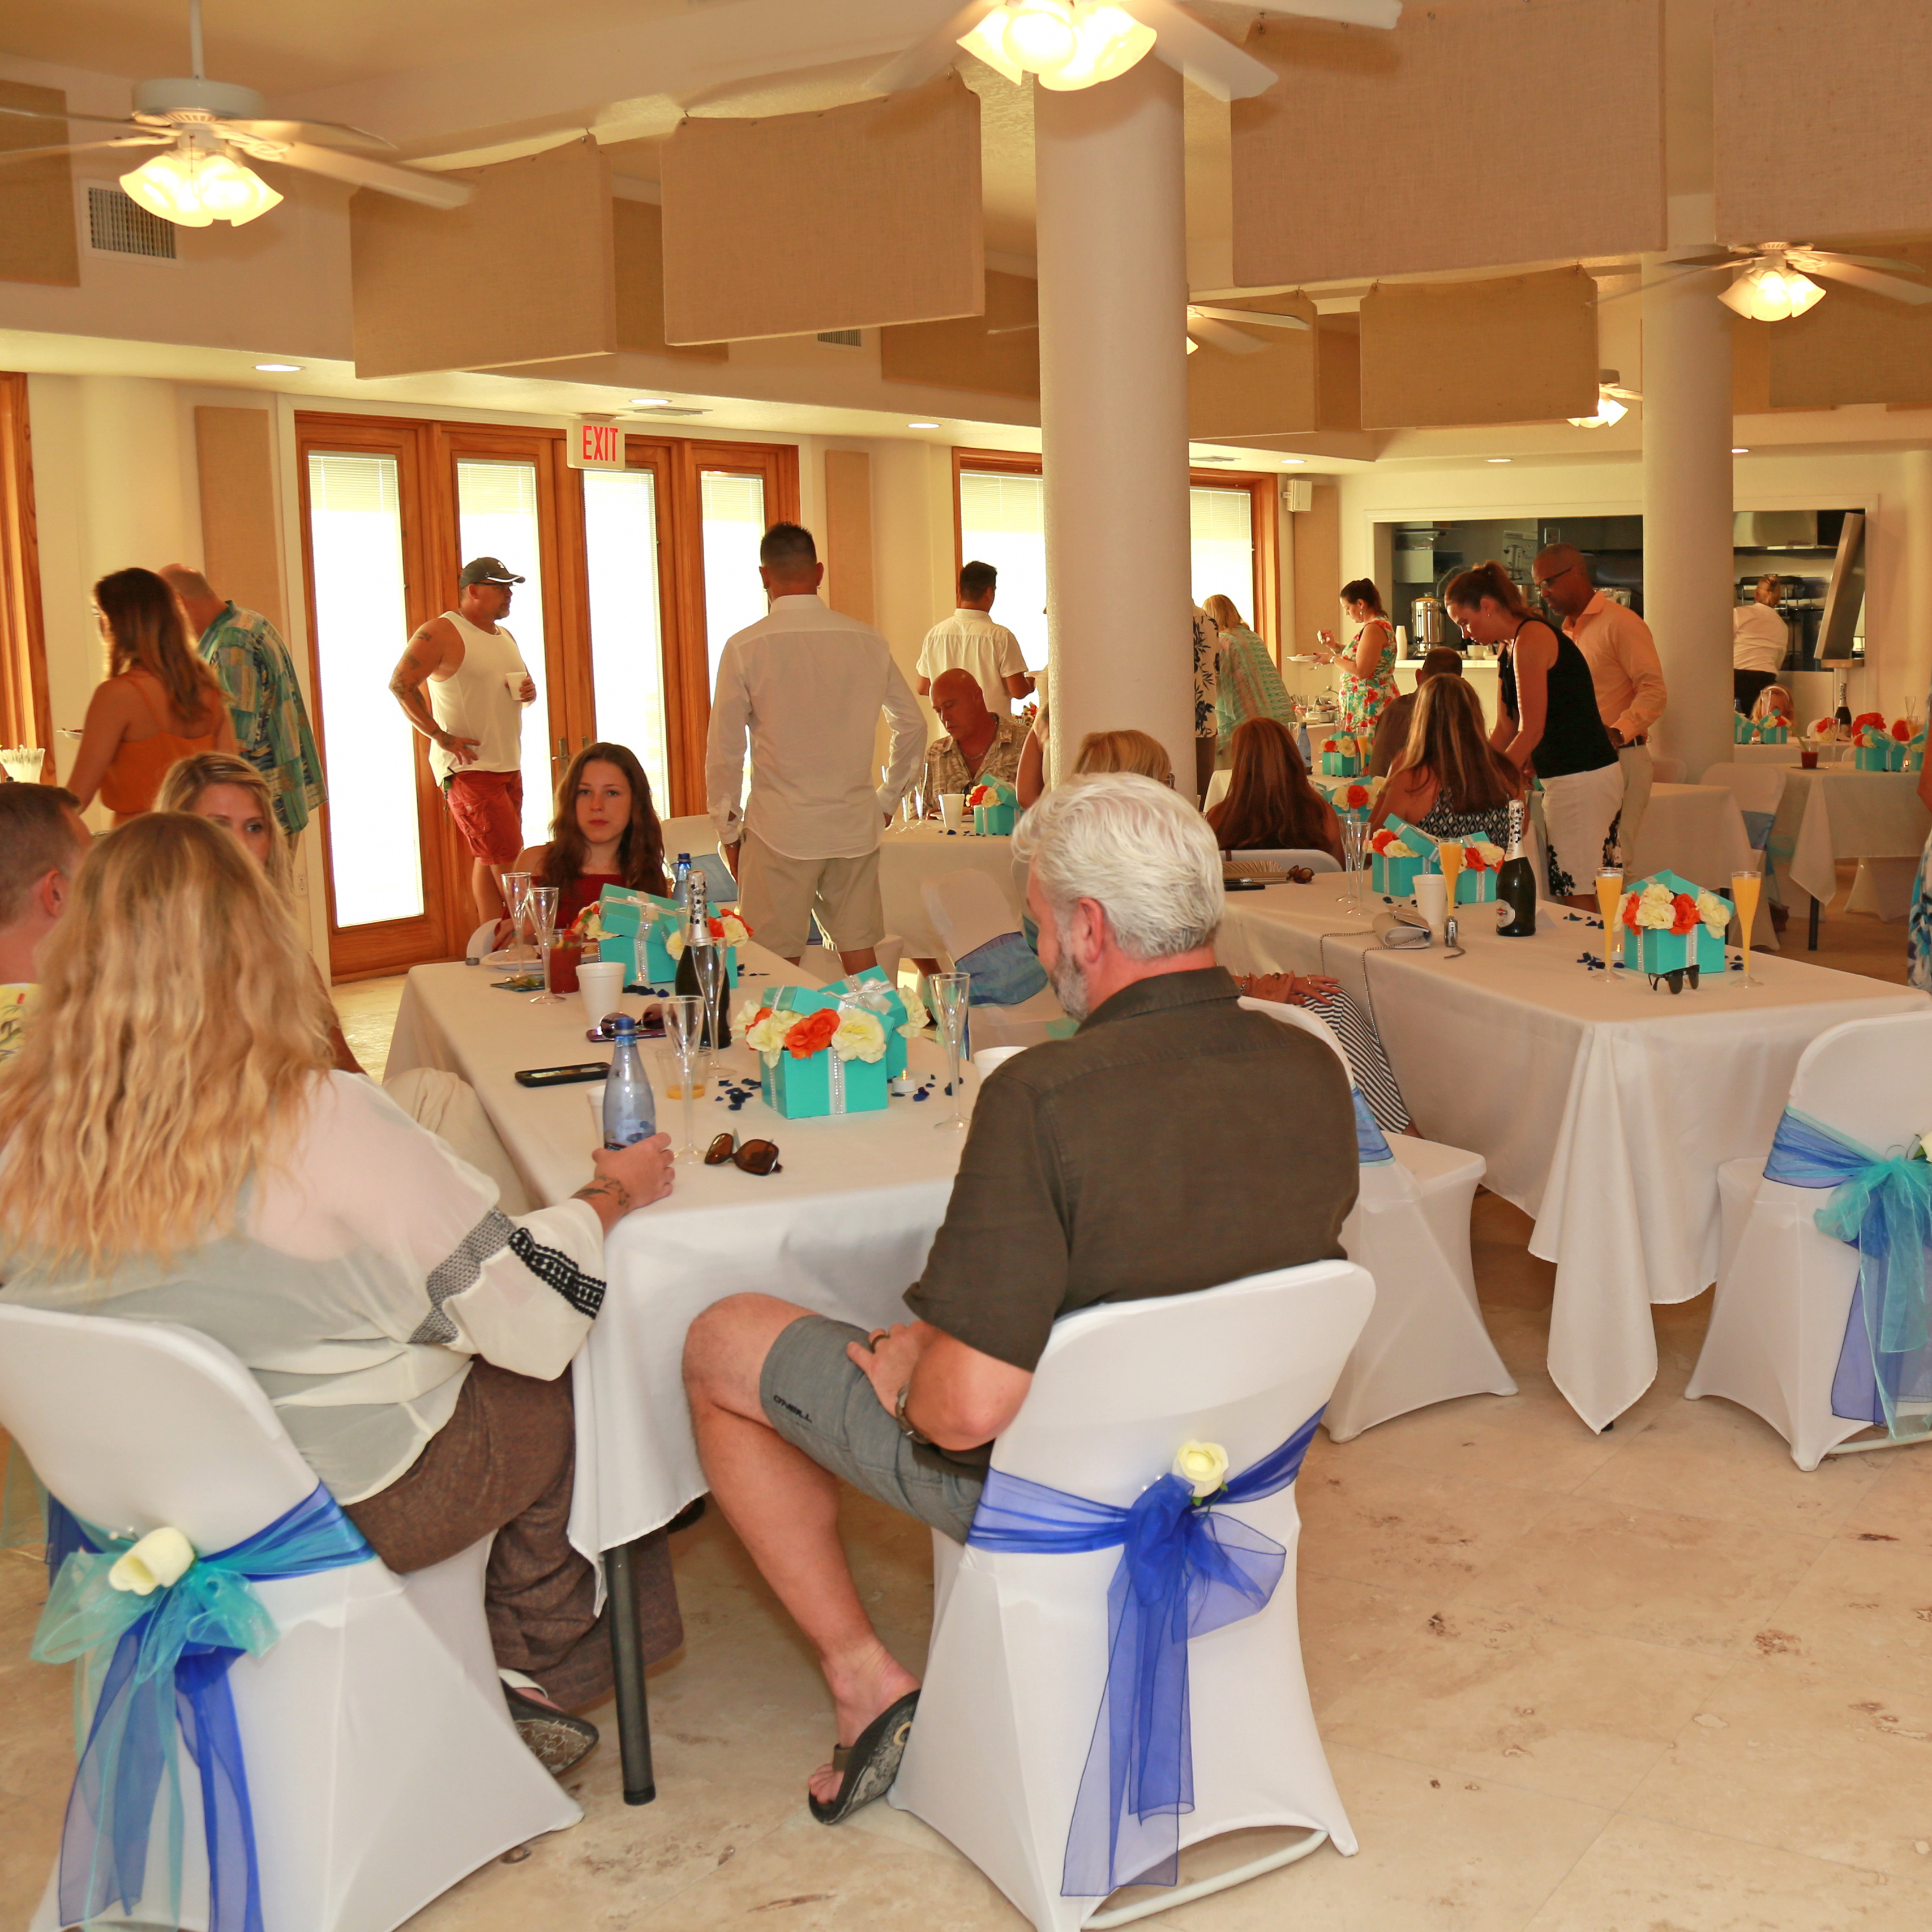 table chair rentals 2 yamaha adjustable piano rental beach and destination weddings new smyrna